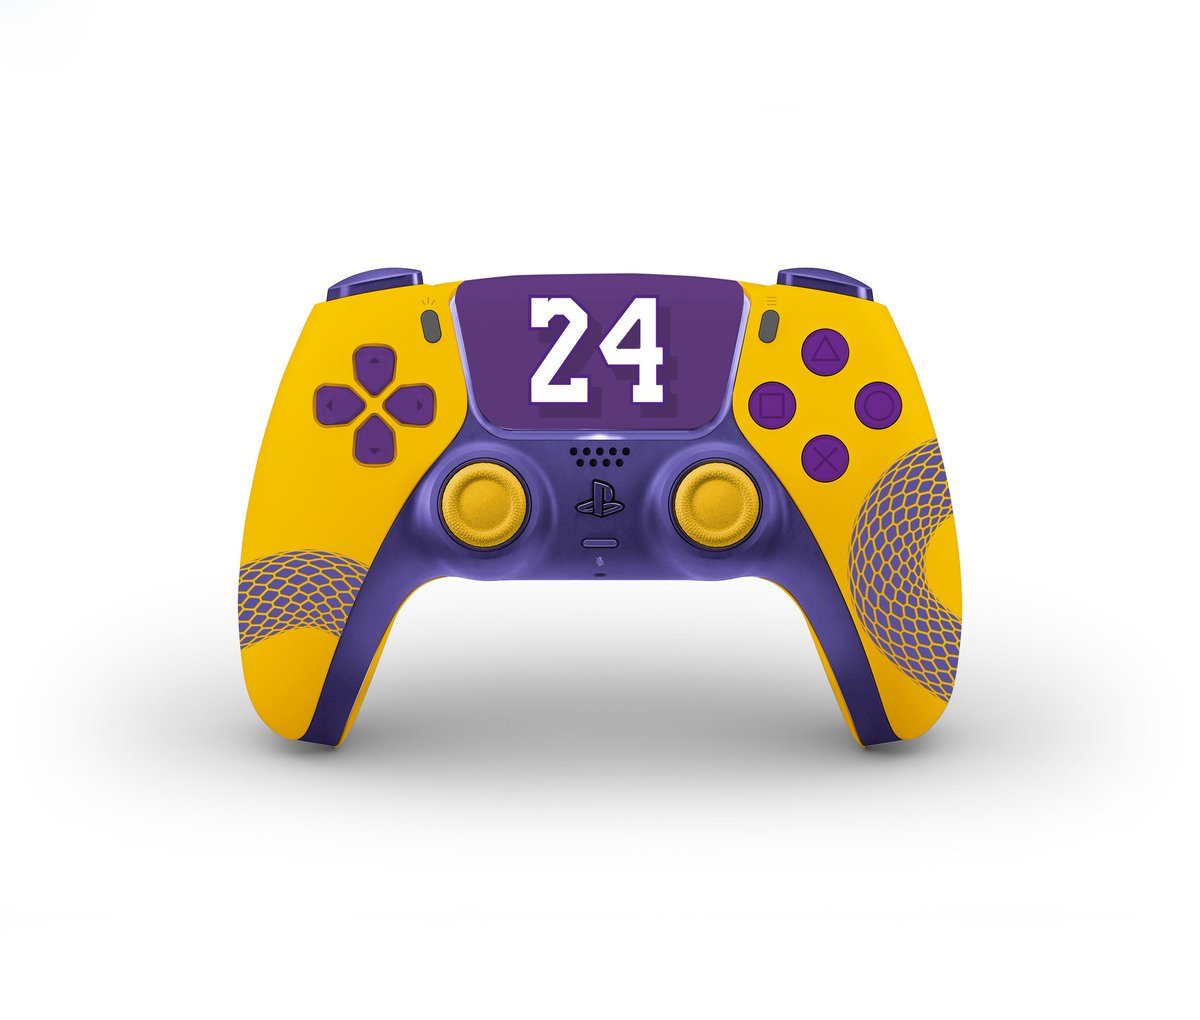 Dan Allen Gaming On Twitter Some More Epic Ps5 Controller Variants Can T Wait To See What Designs We Get In The Future Playstation5